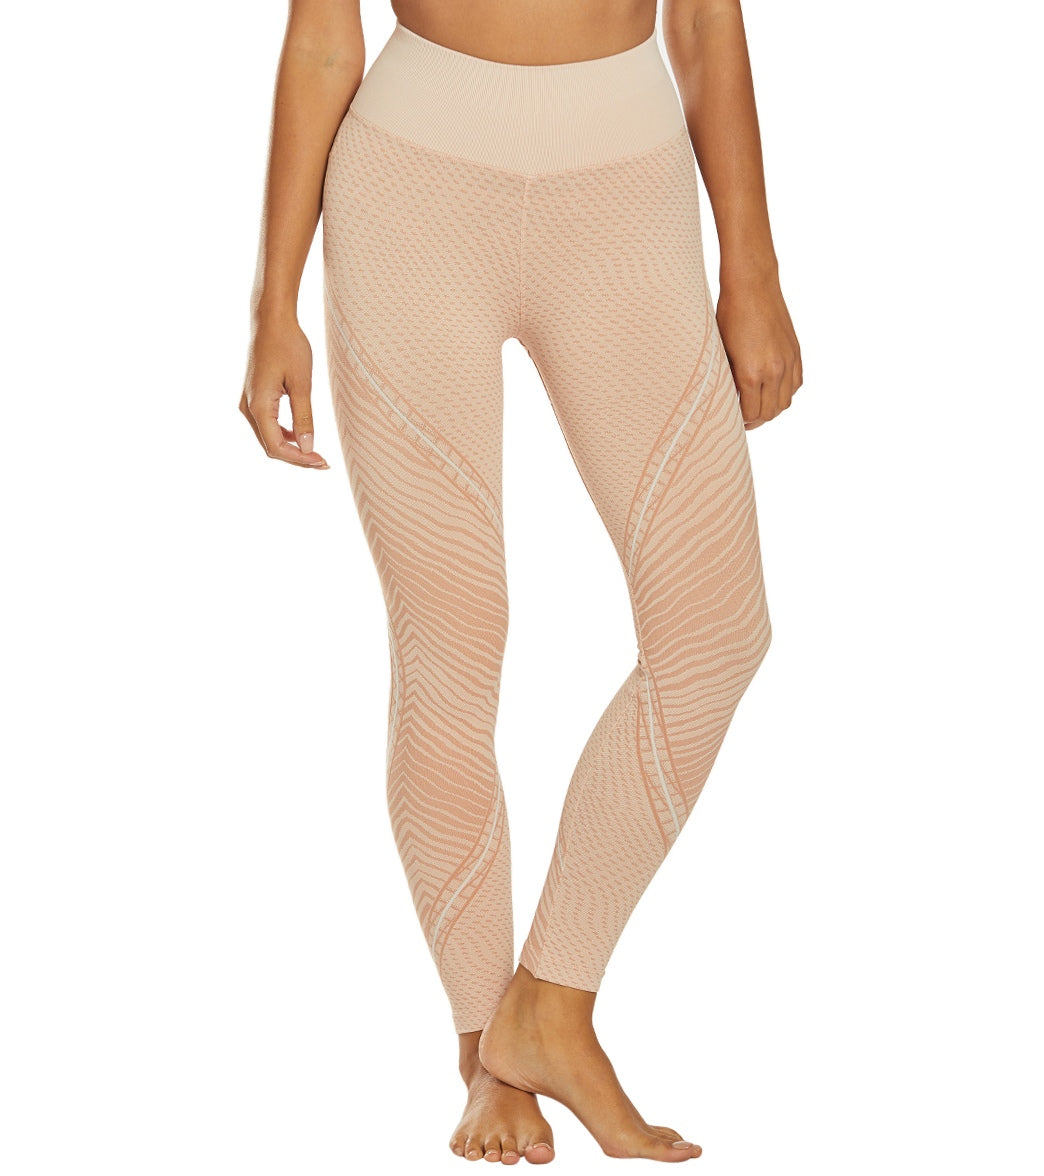 NUX Wildcat Seamless High Waisted Yoga Leggings - Not Nude Spandex